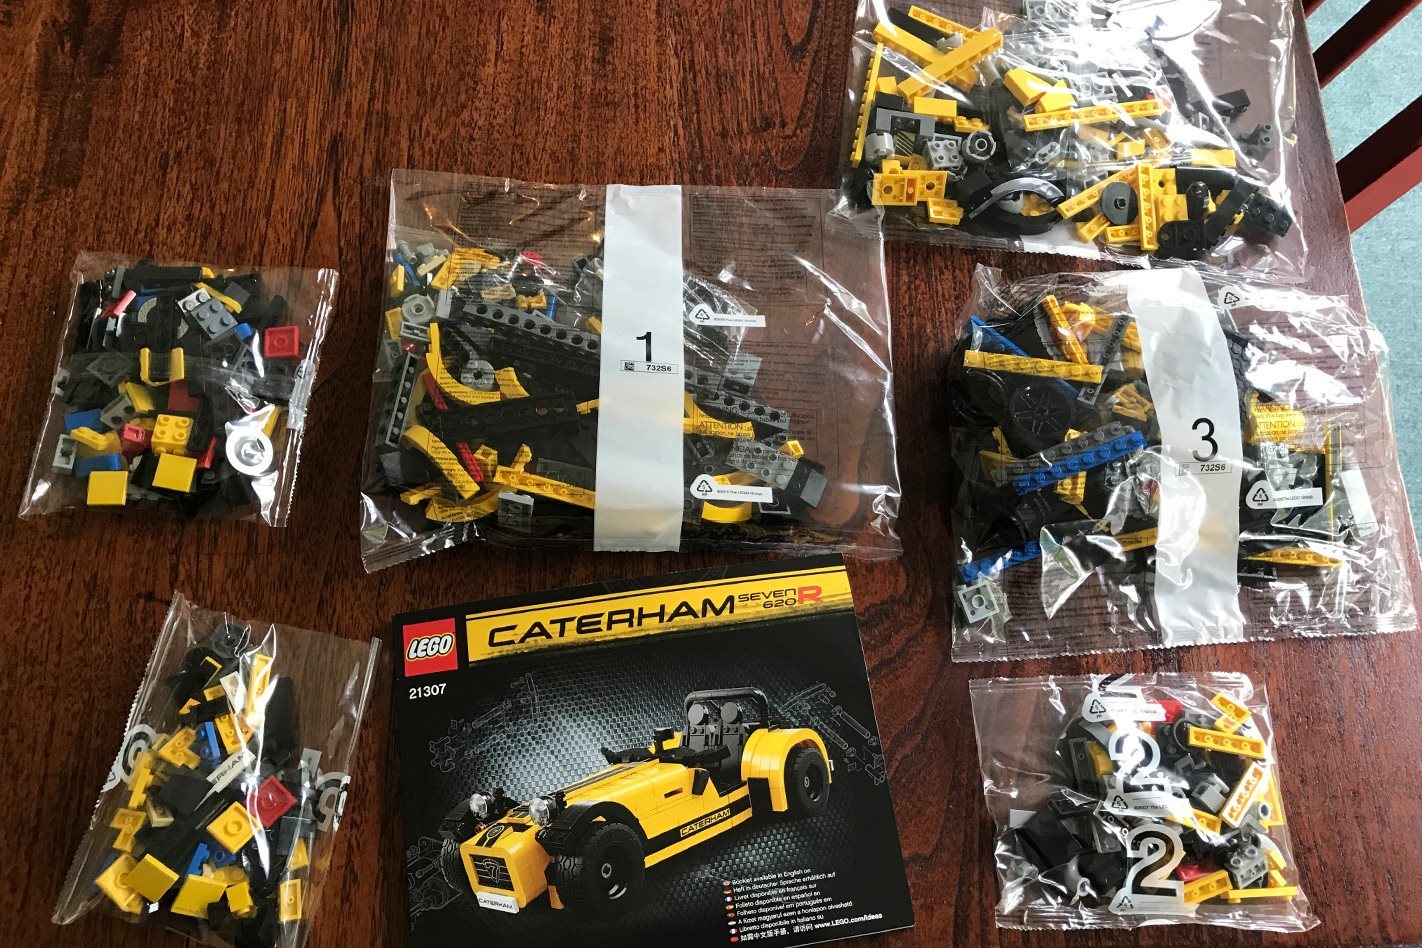 LEGO Caterham 620R parts